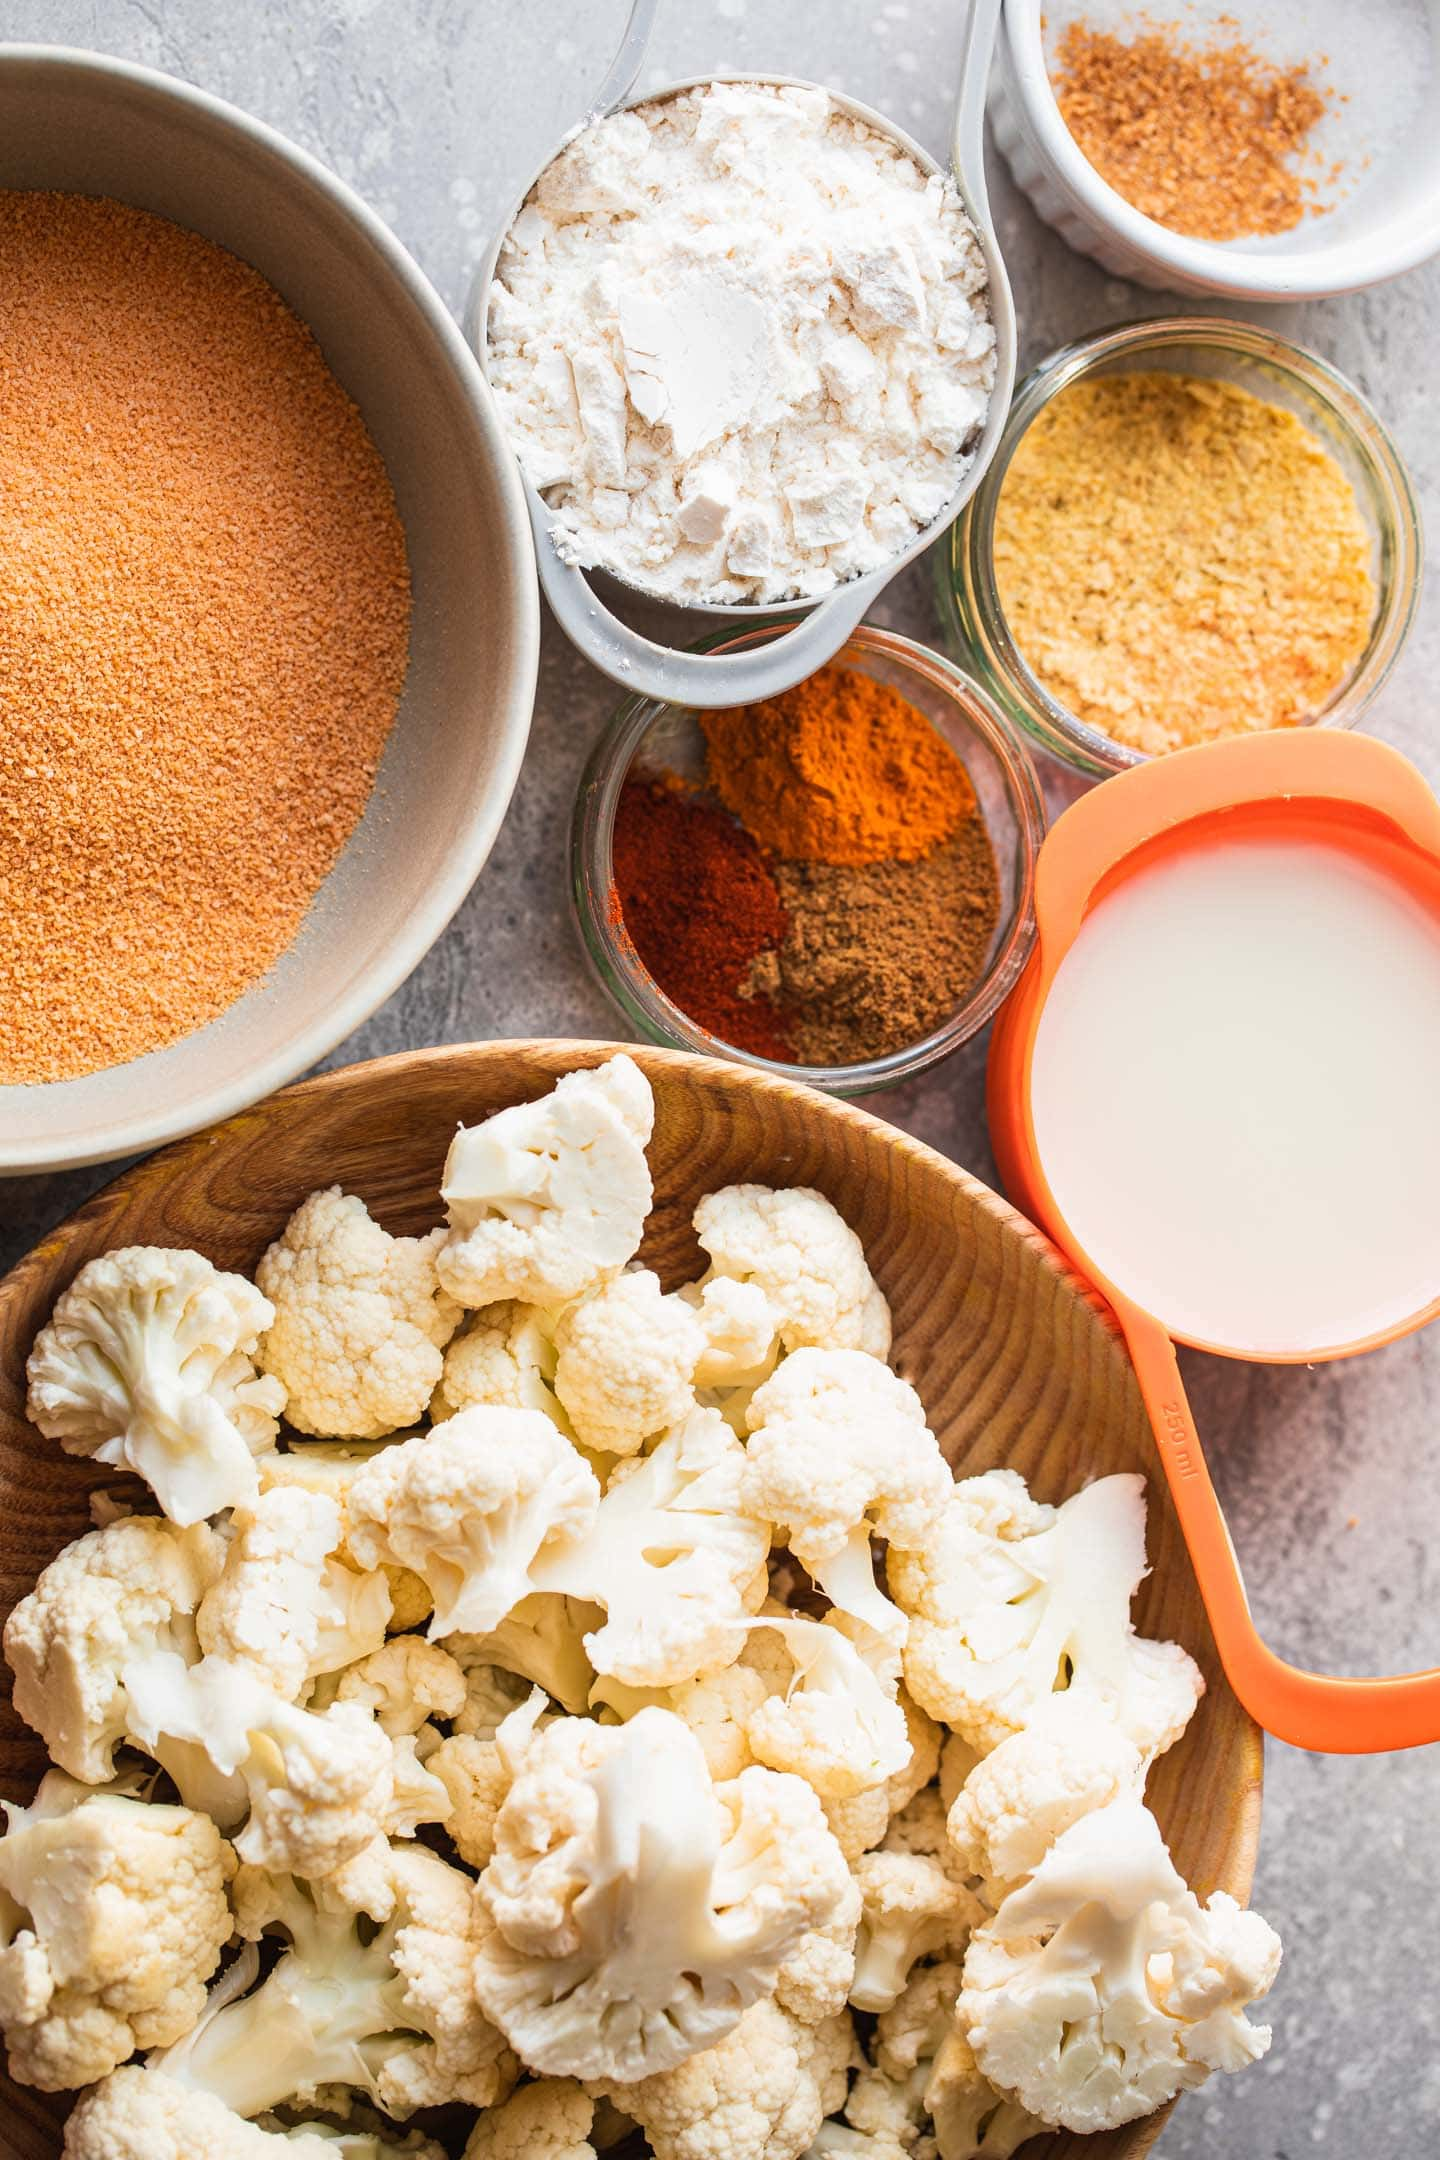 Ingredients for vegan cauliflower wings